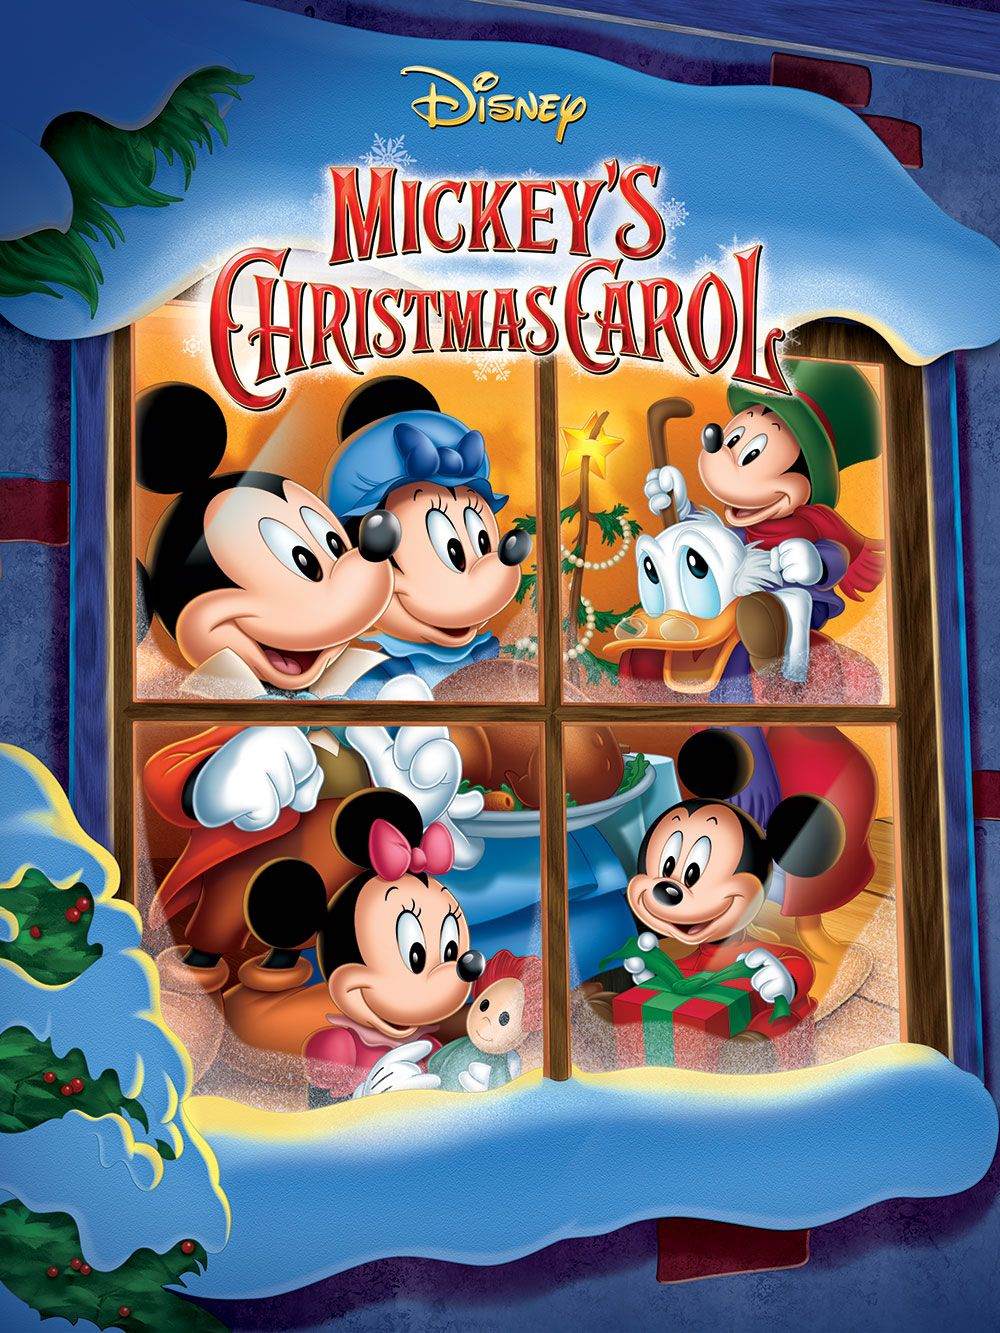 Mickey S Christmas Carol Produced By Walt Disney Mickey Mouse Donald Duck And Many More Of Mickeys Christmas Carol Mickey Christmas Disney Christmas Movies